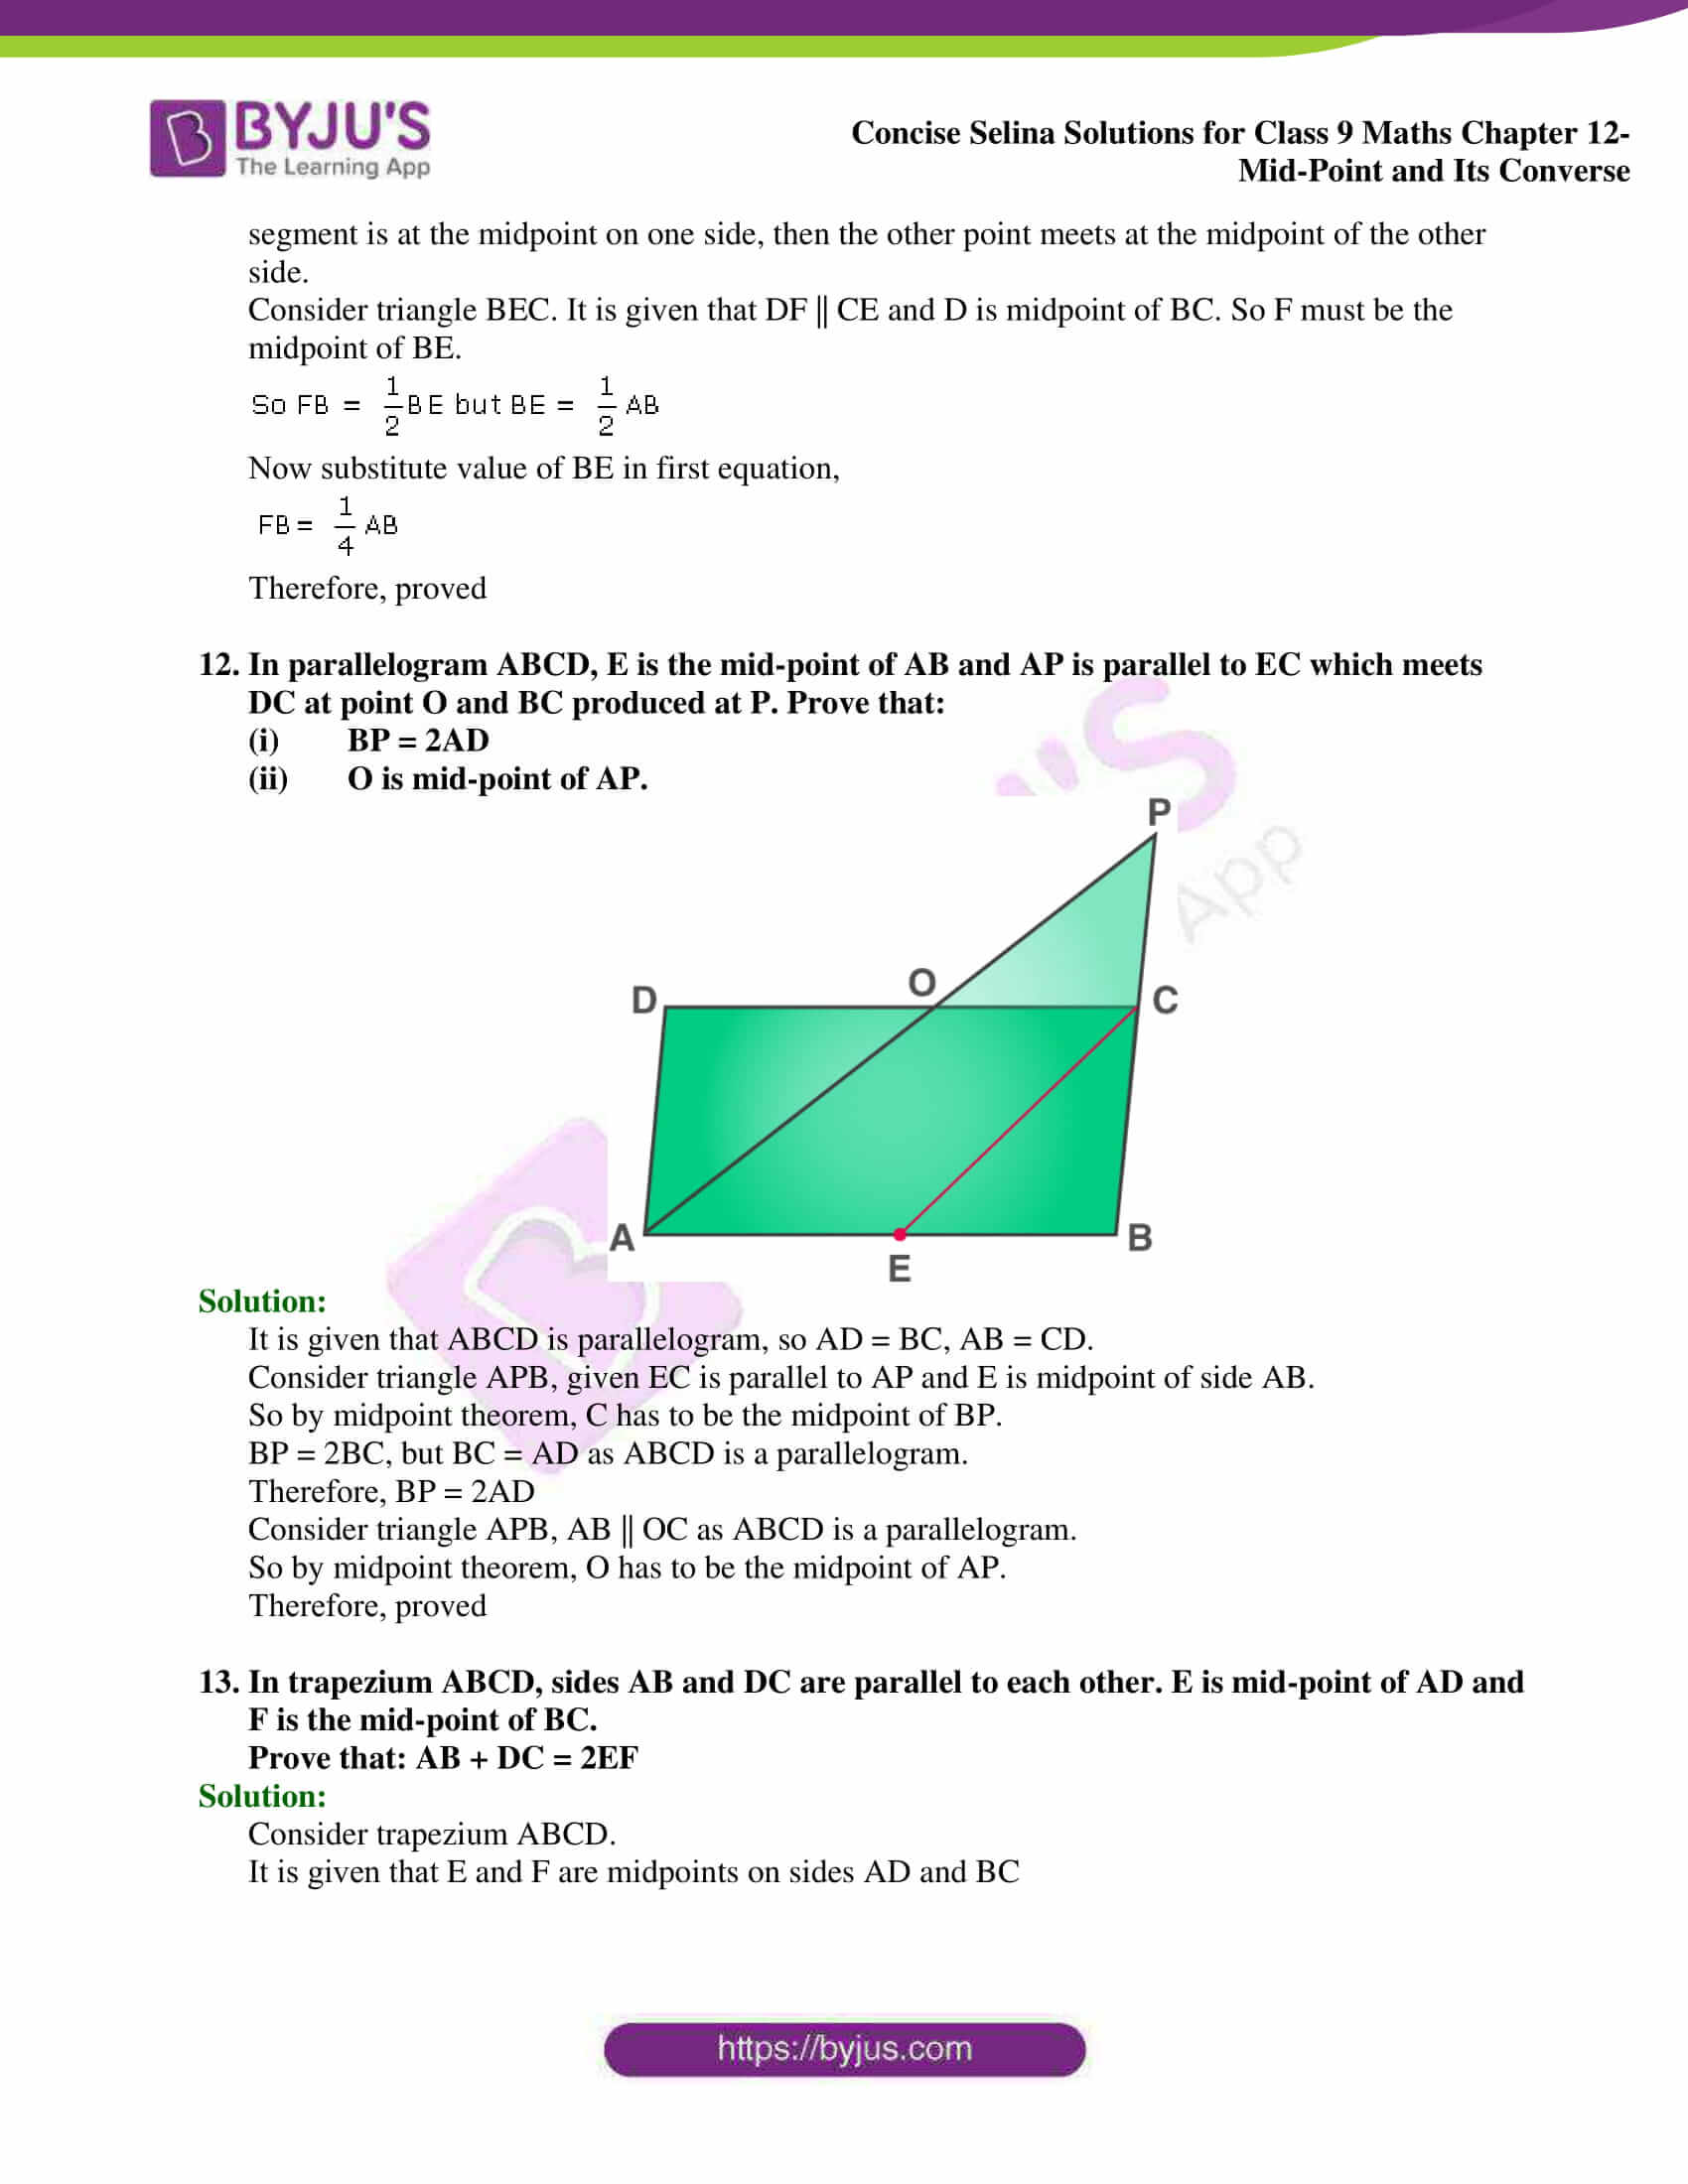 selina Solutions for Class 9 Maths Chapter 12 20